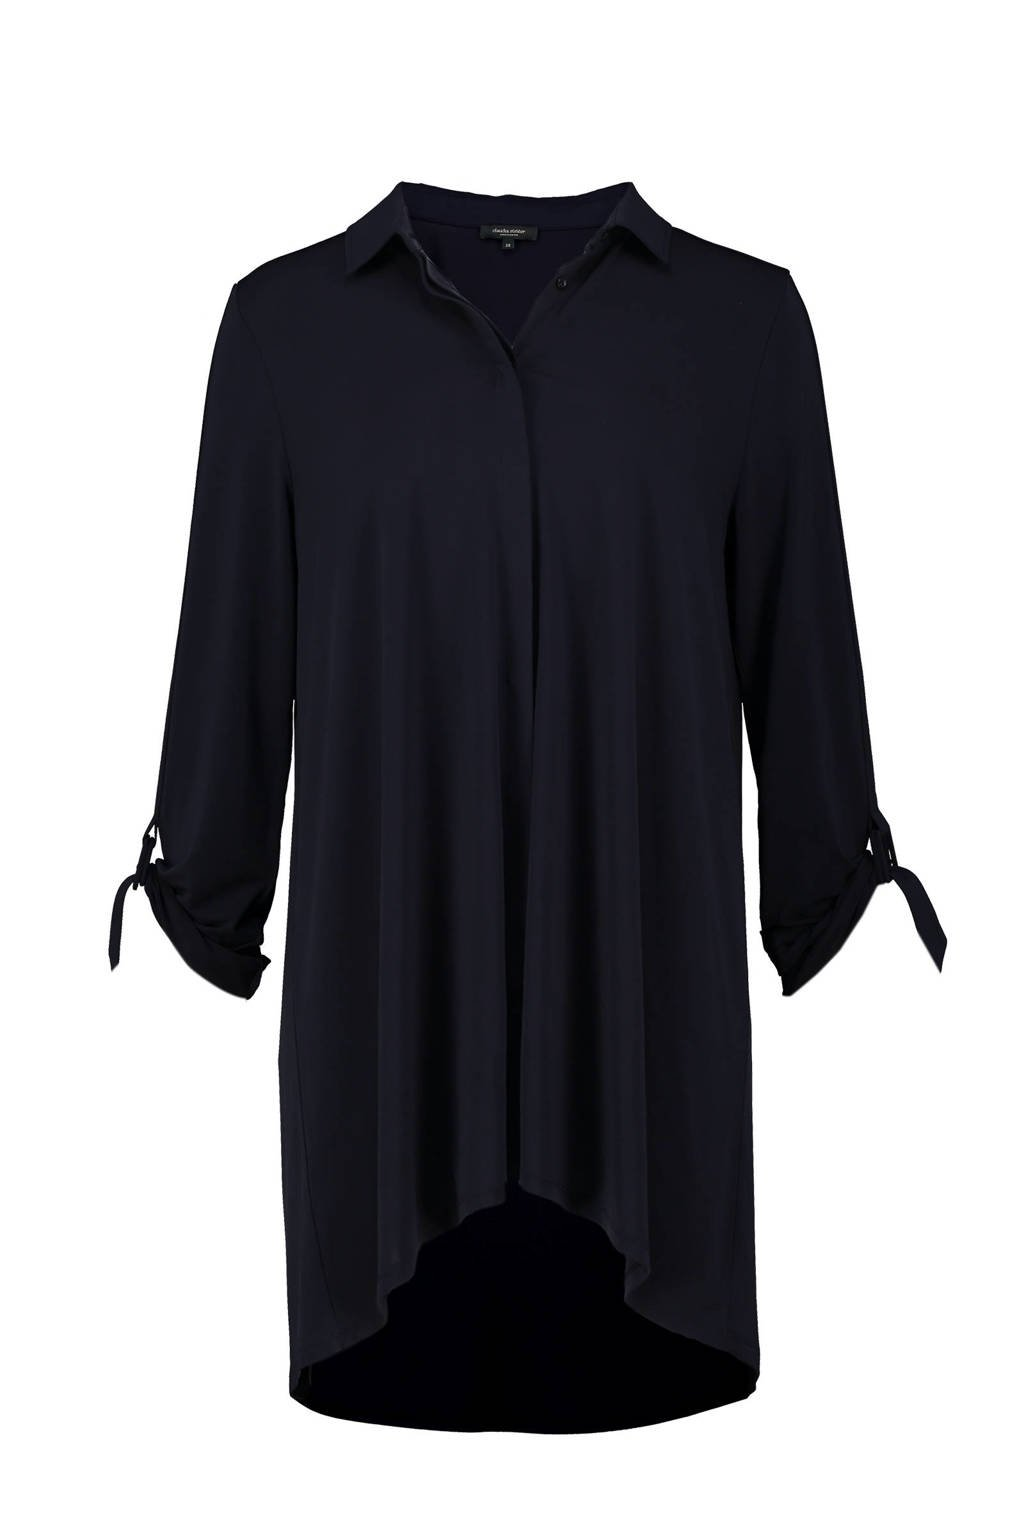 Claudia Sträter blouse donkerblauw, Donkerblauw